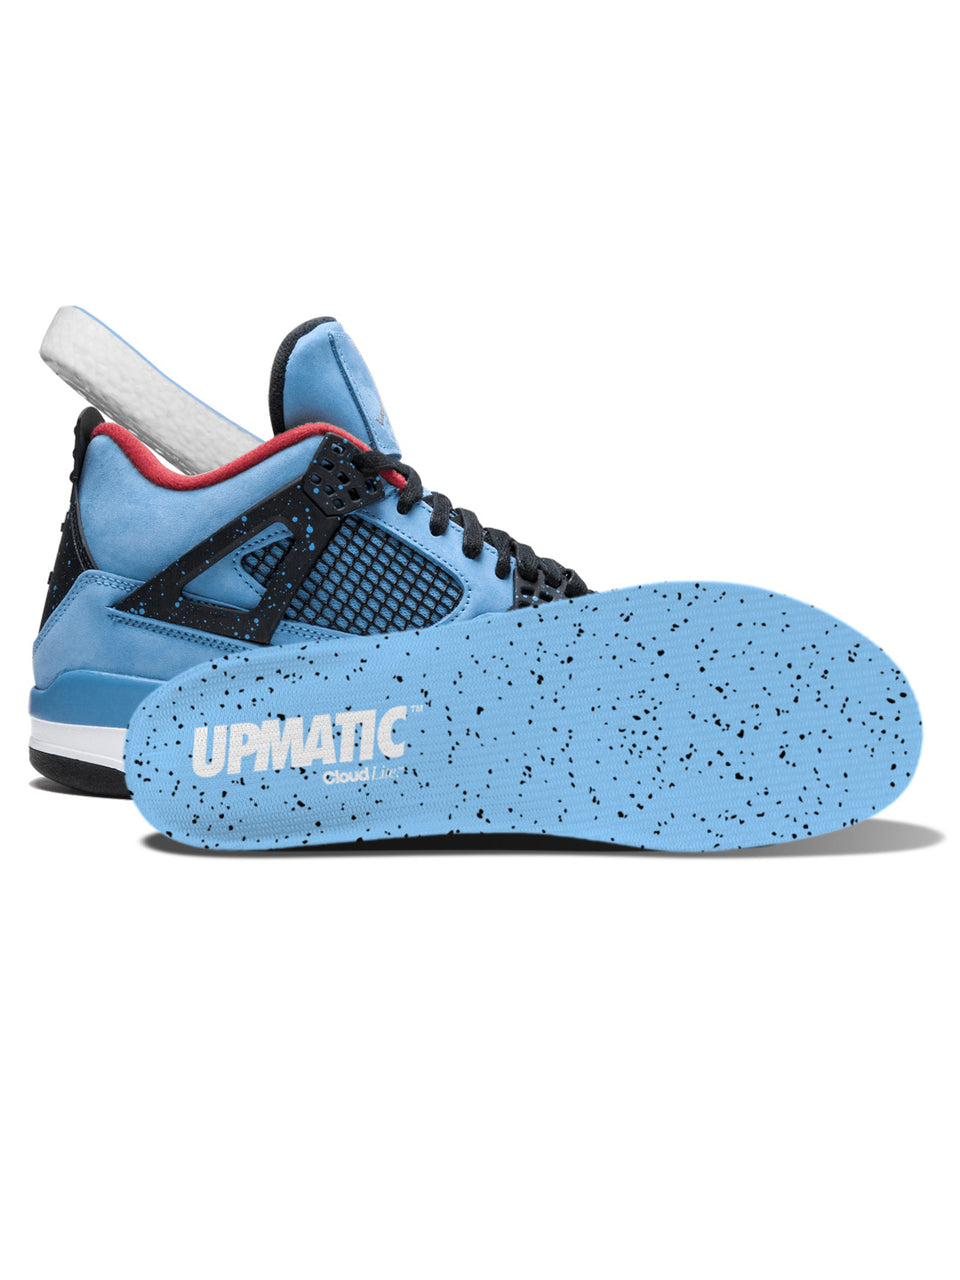 UPMATIC Cloudlite Supercharged Insoles 1989 Grey Splatter Limited Edition